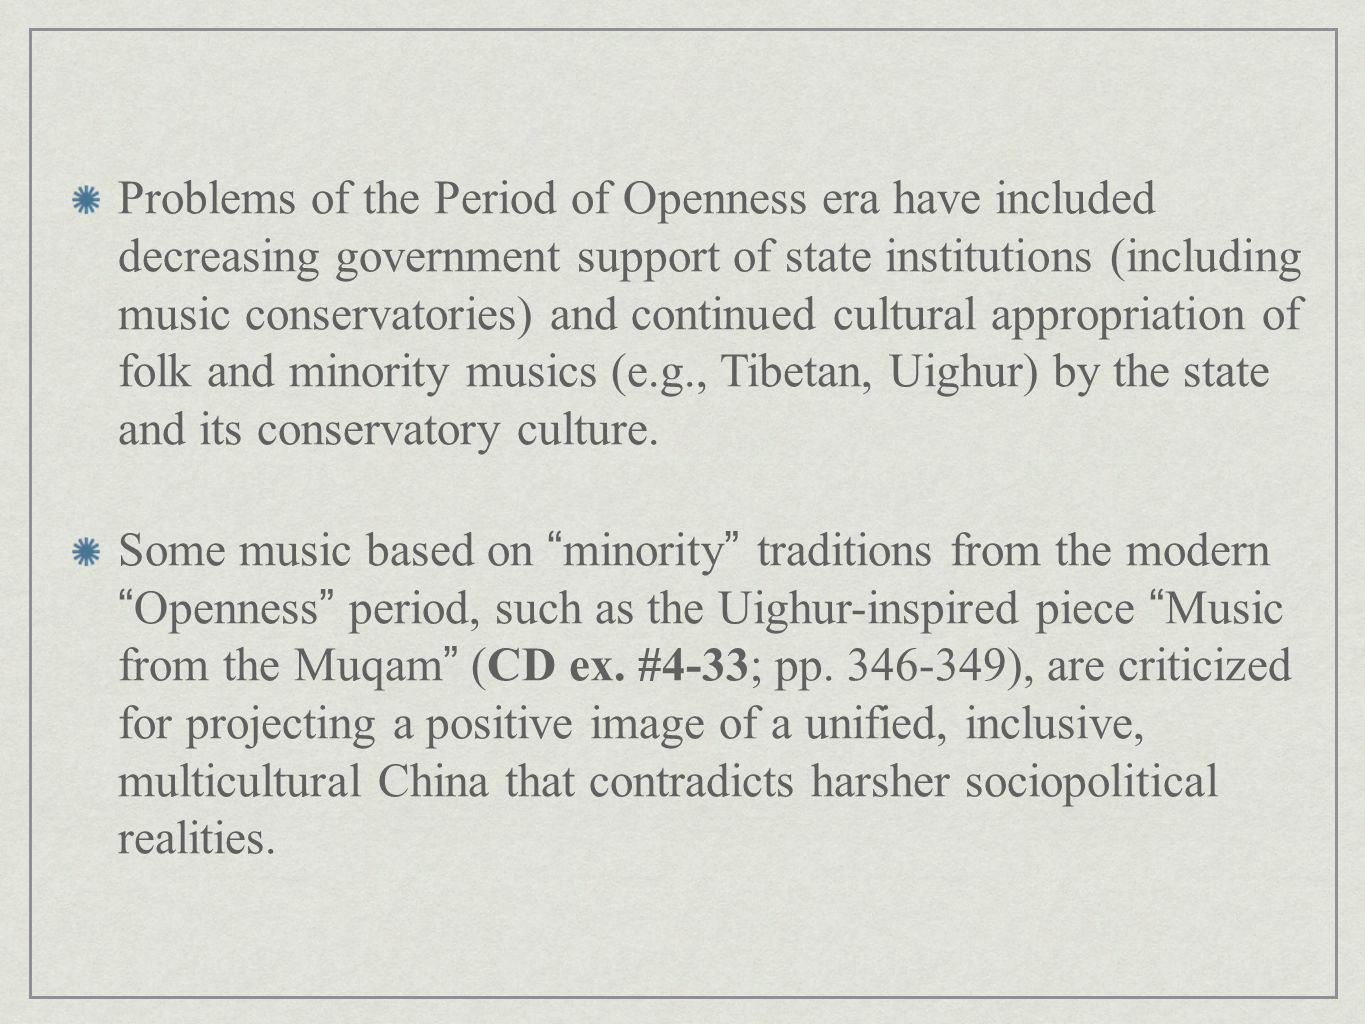 Problems of the Period of Openness era have included decreasing government support of state institutions (including music conservatories) and continued cultural appropriation of folk and minority musics (e.g., Tibetan, Uighur) by the state and its conservatory culture.